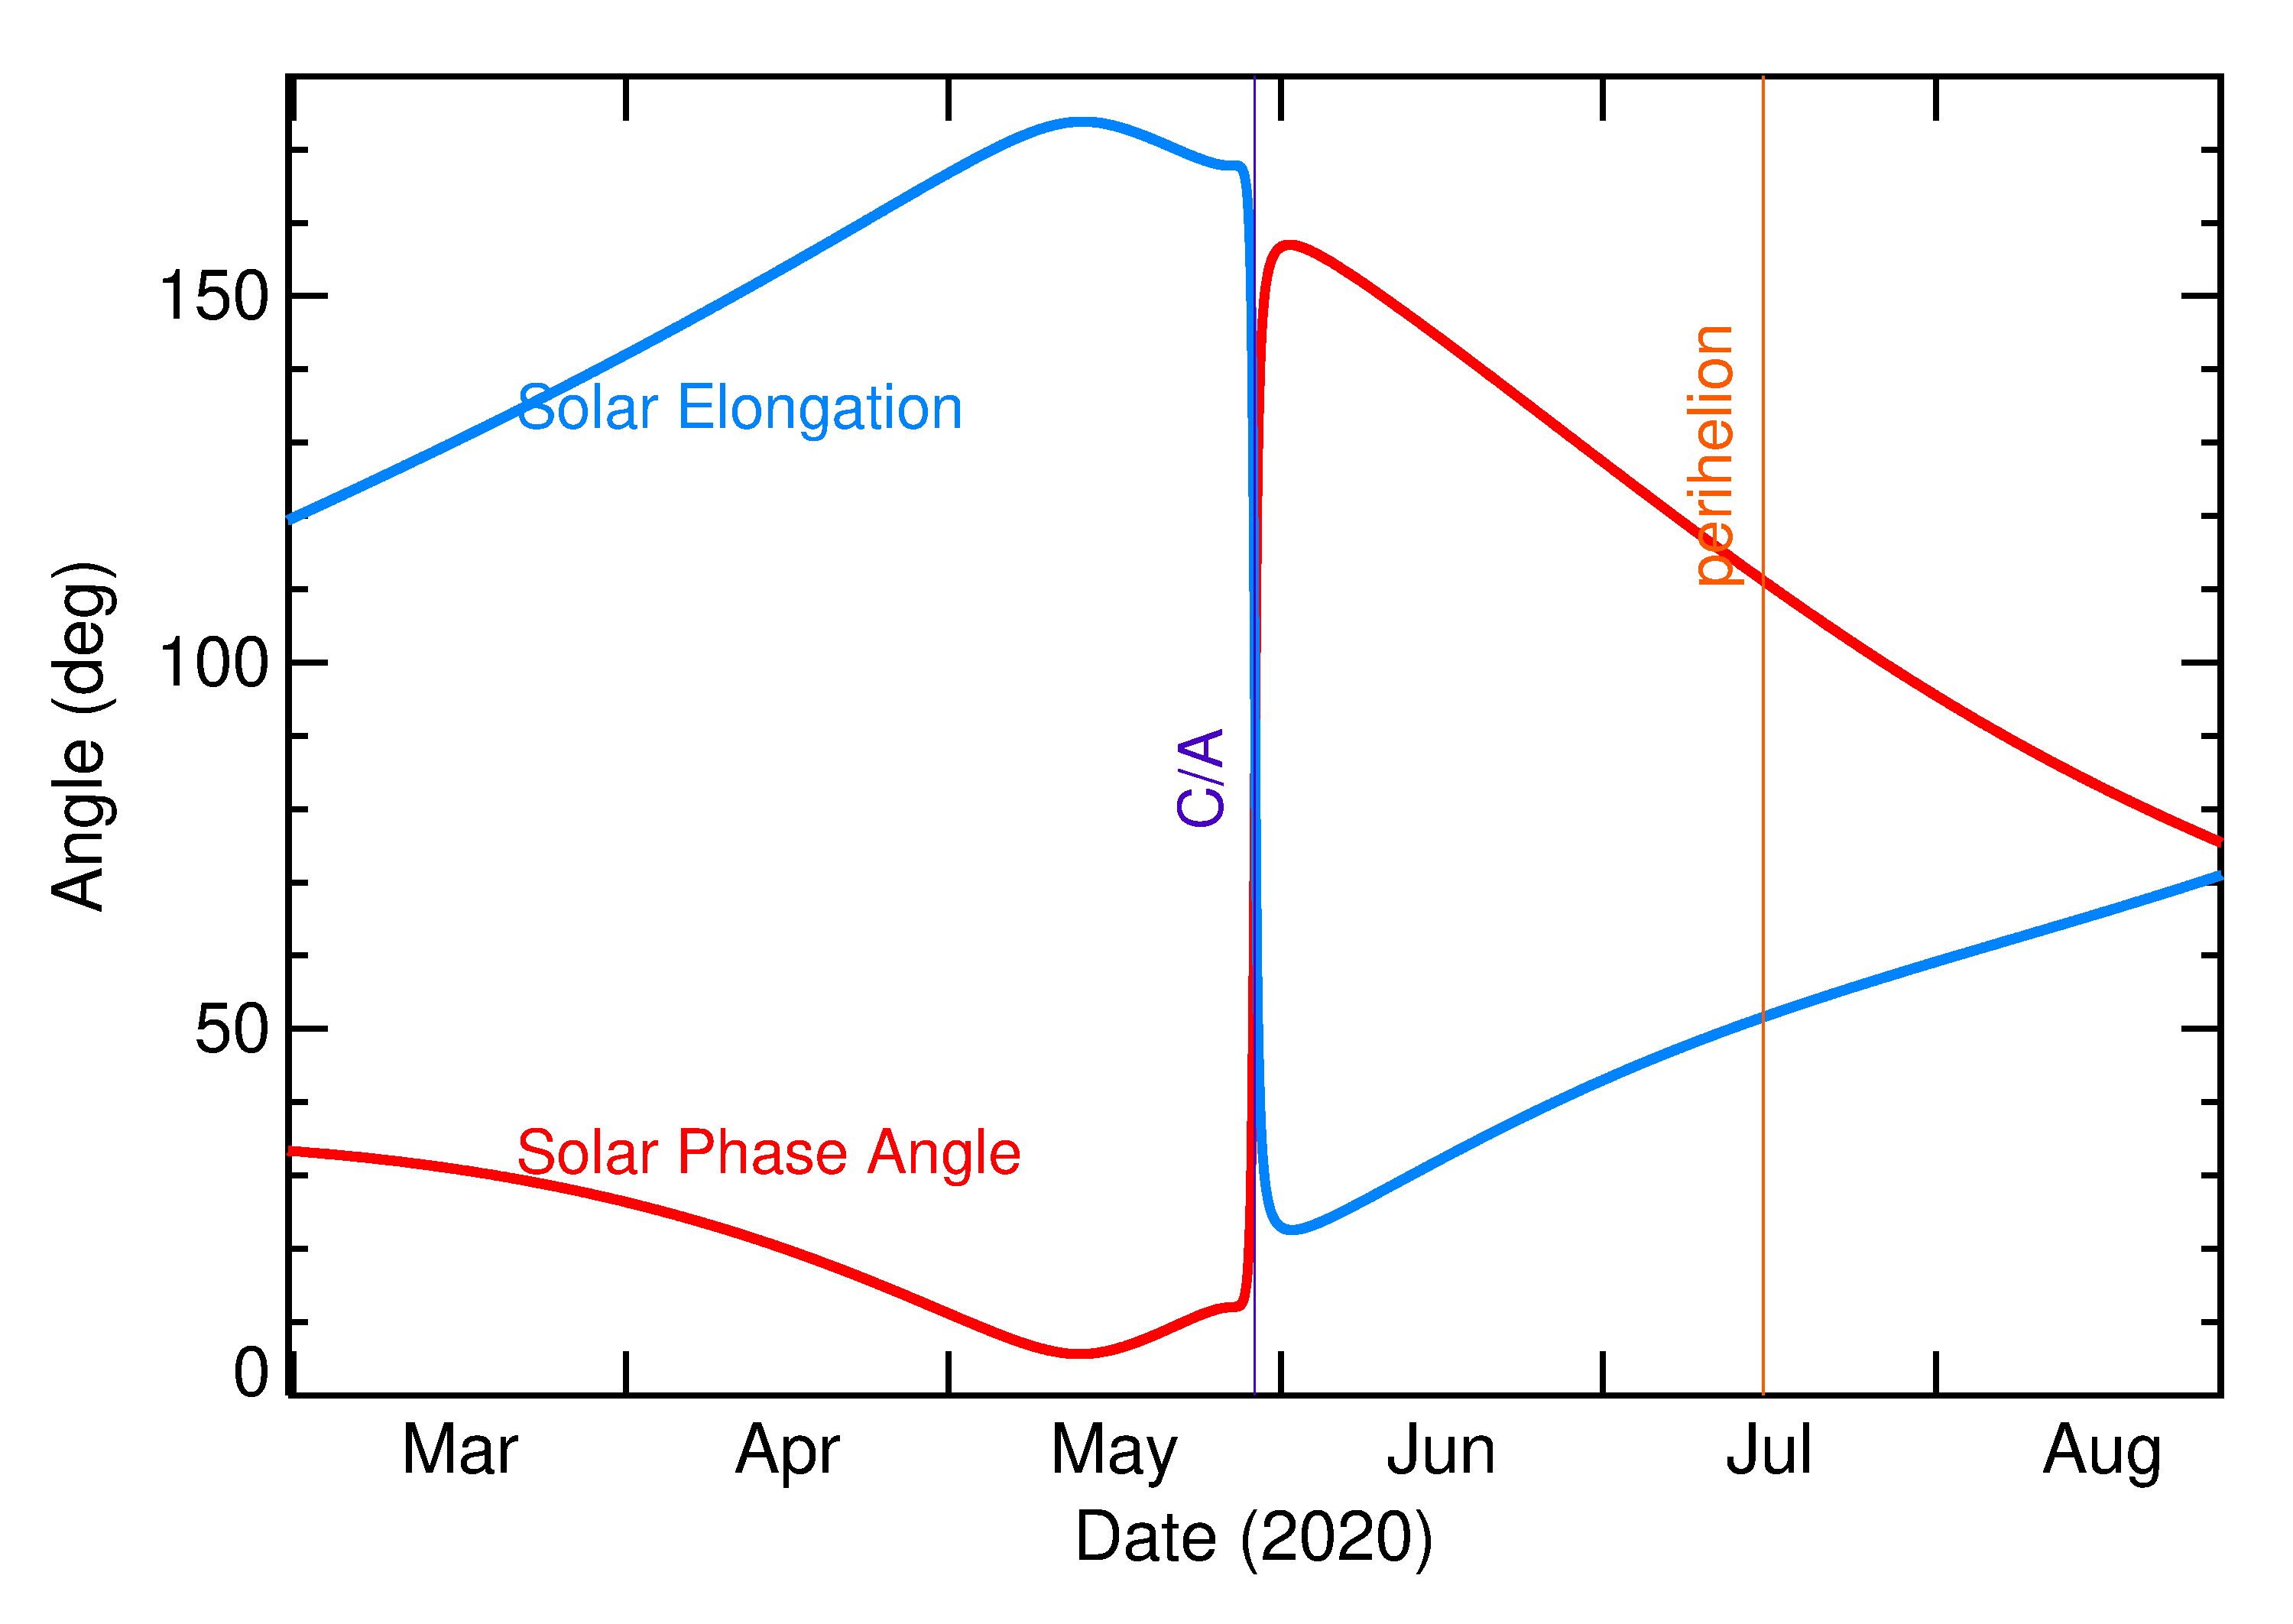 Solar Elongation and Solar Phase Angle of 2020 KF5 in the months around closest approach